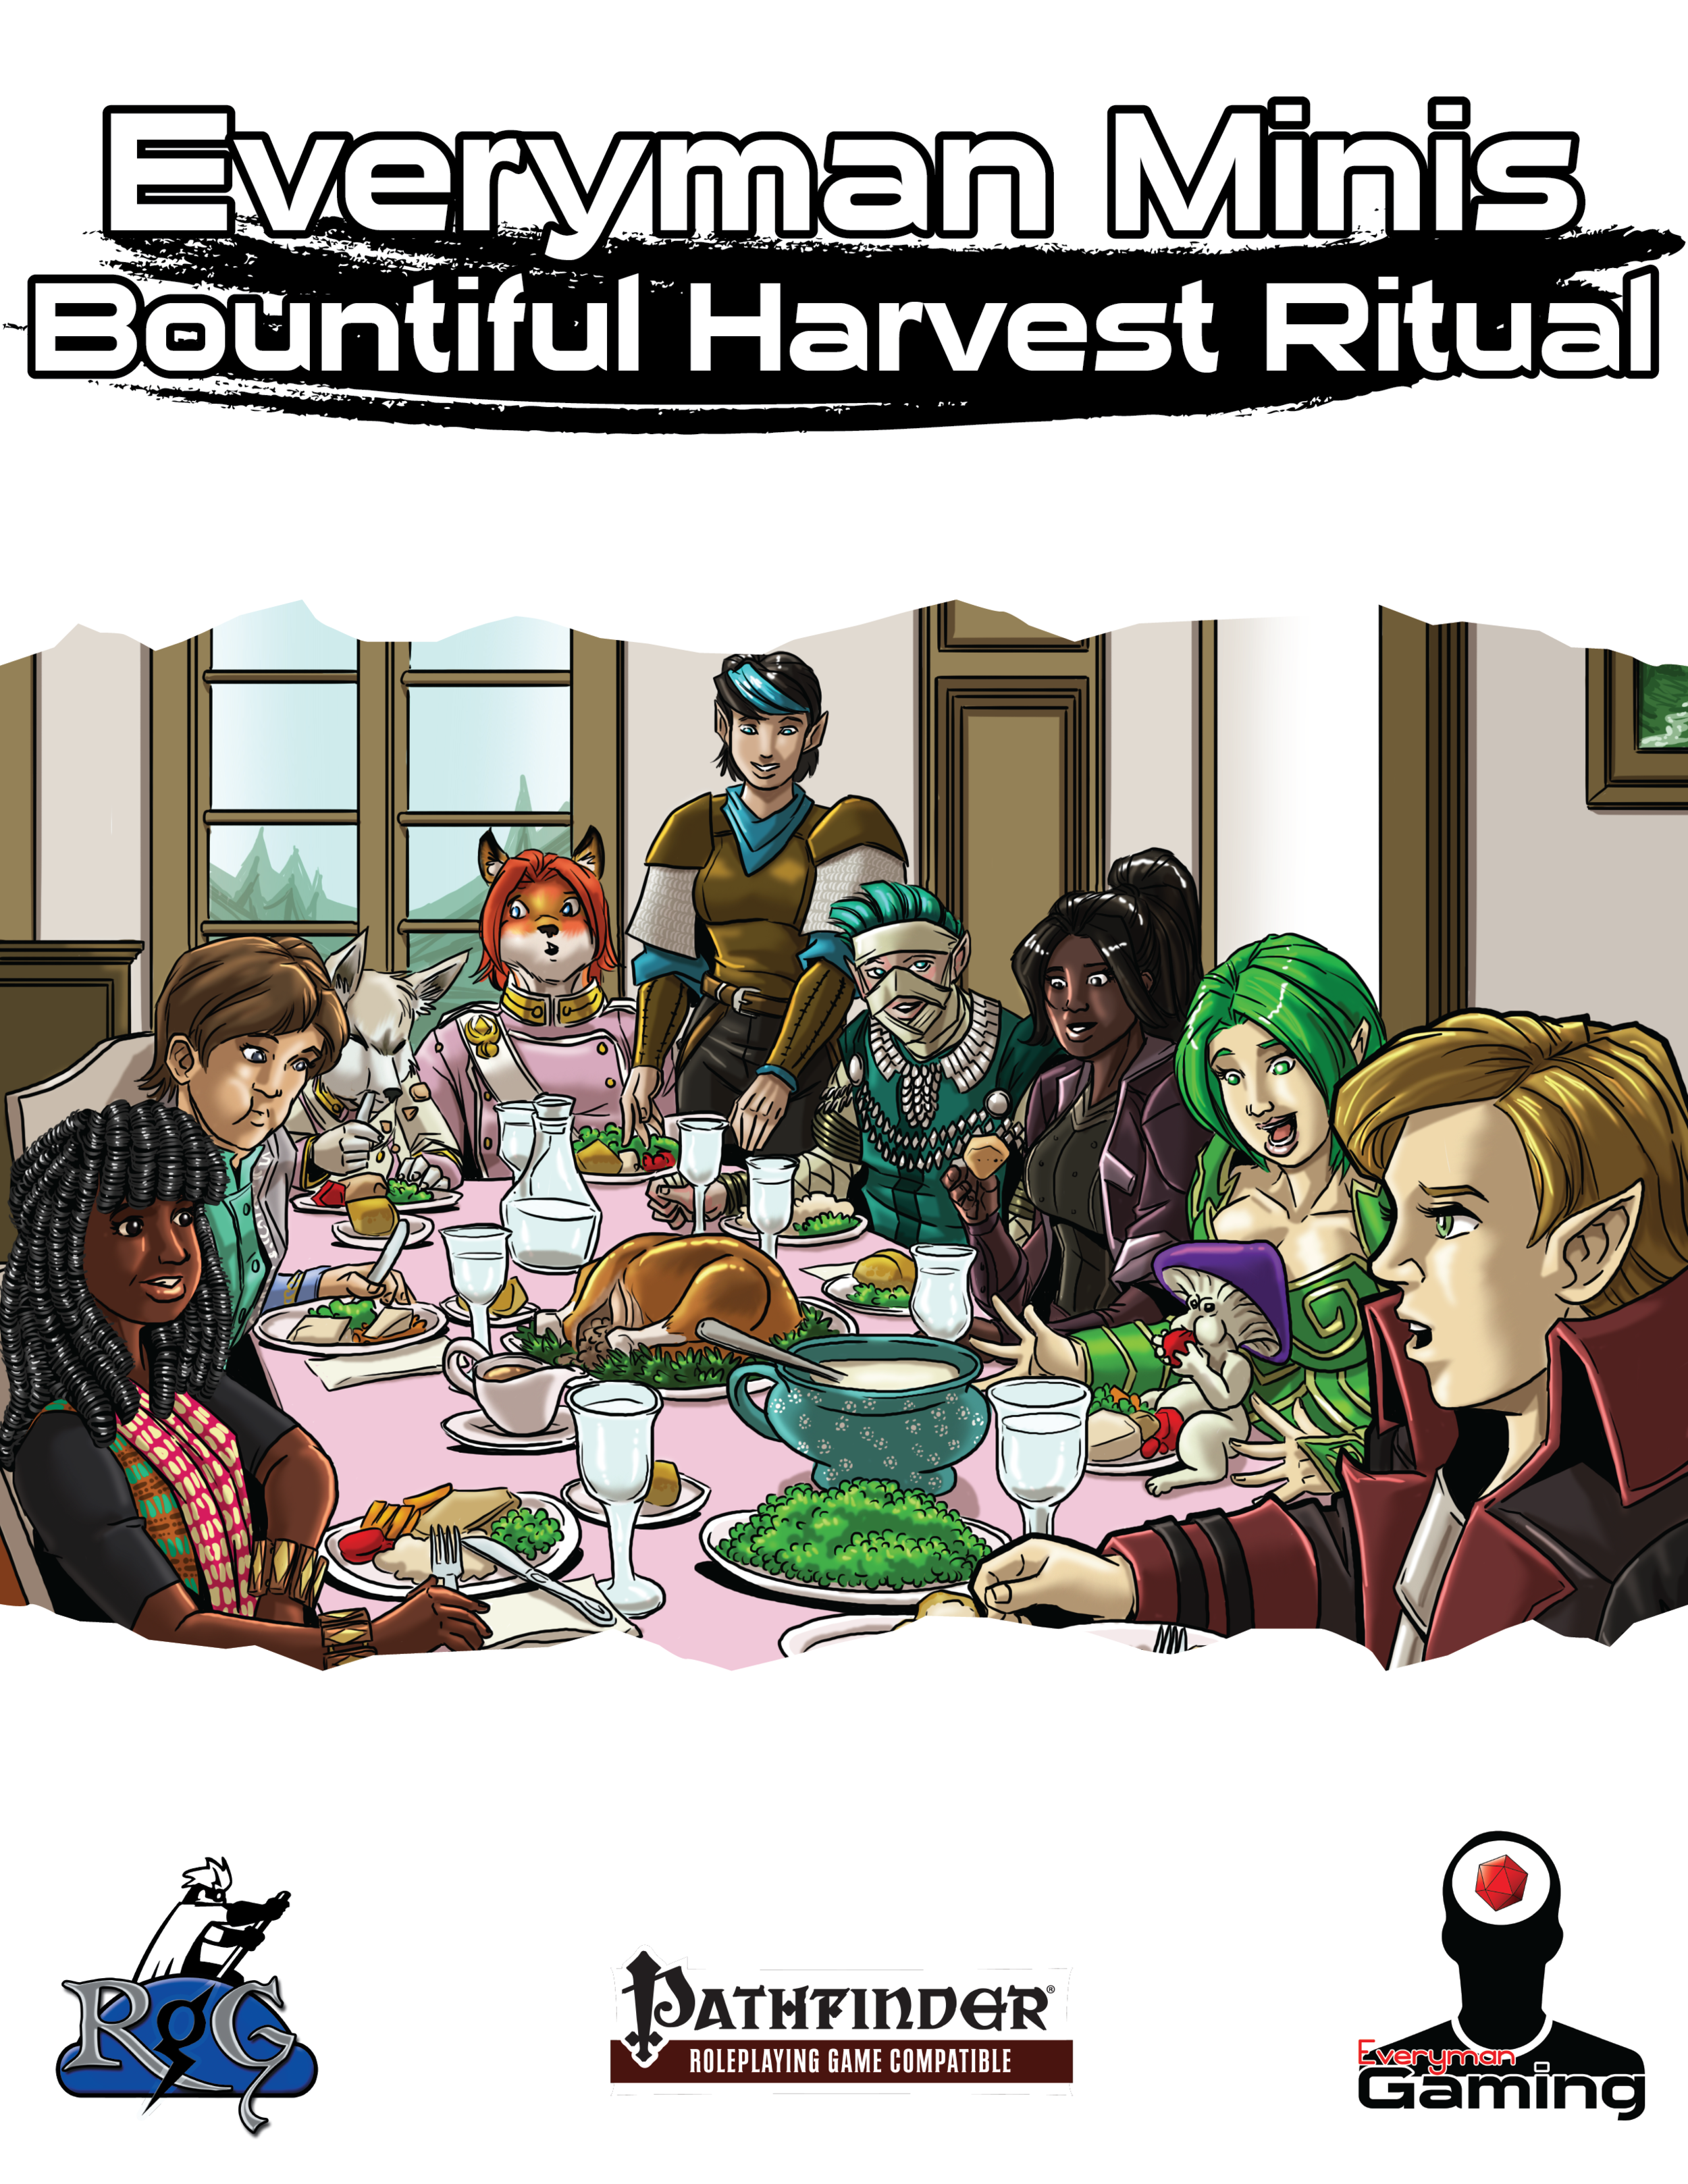 43 EMM Bountiful Harvest Ritual.png